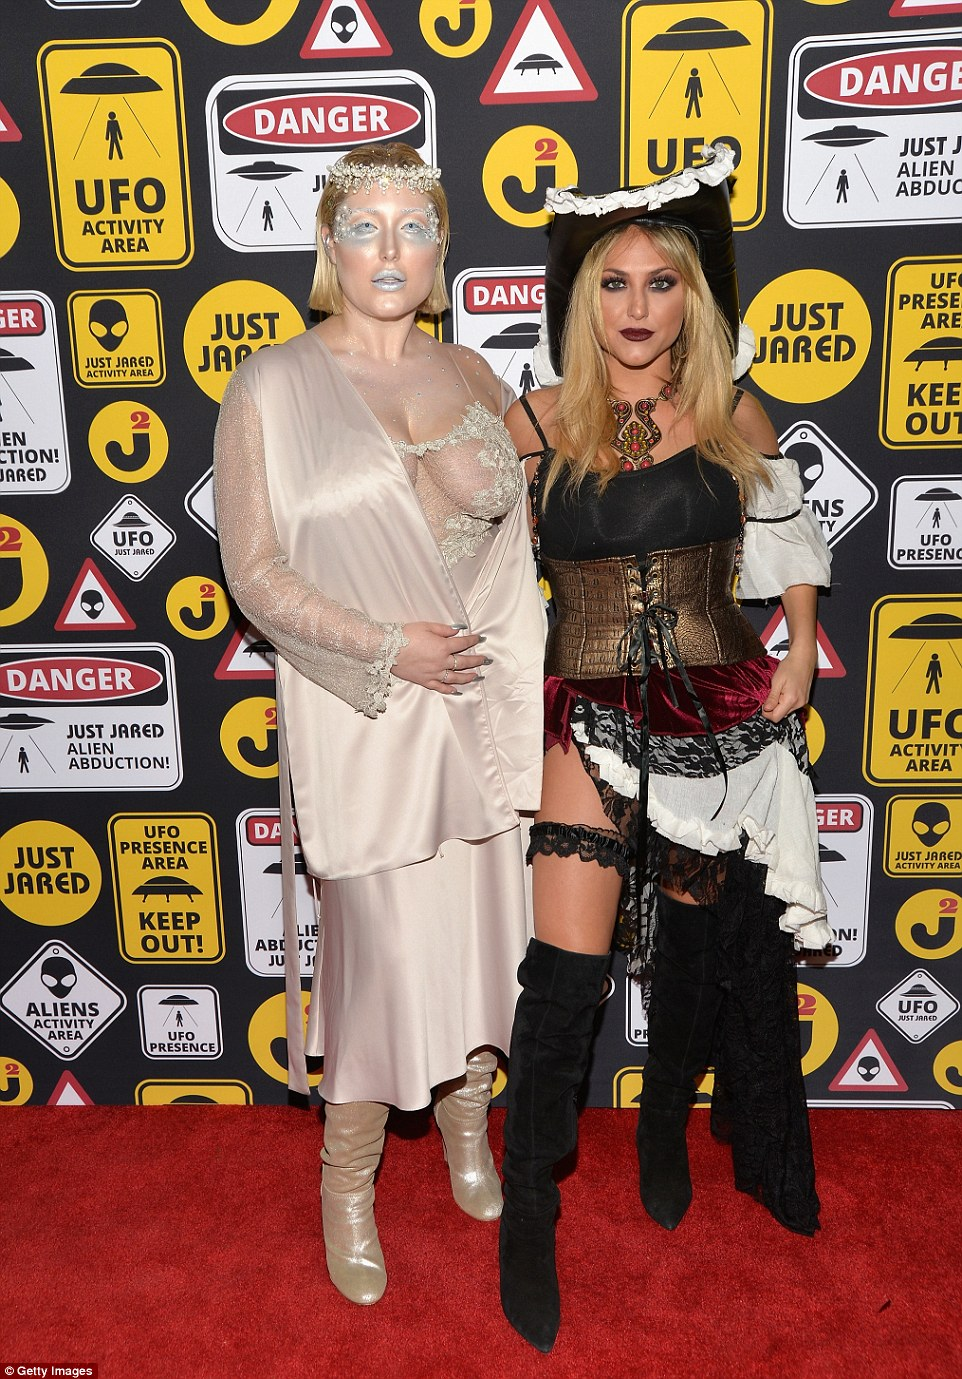 Daring: David Hasselhoff's daughter Hayley left almost nothing to the imagination in a sheer top as she joined pirate-clad pal Cassie Scerbo